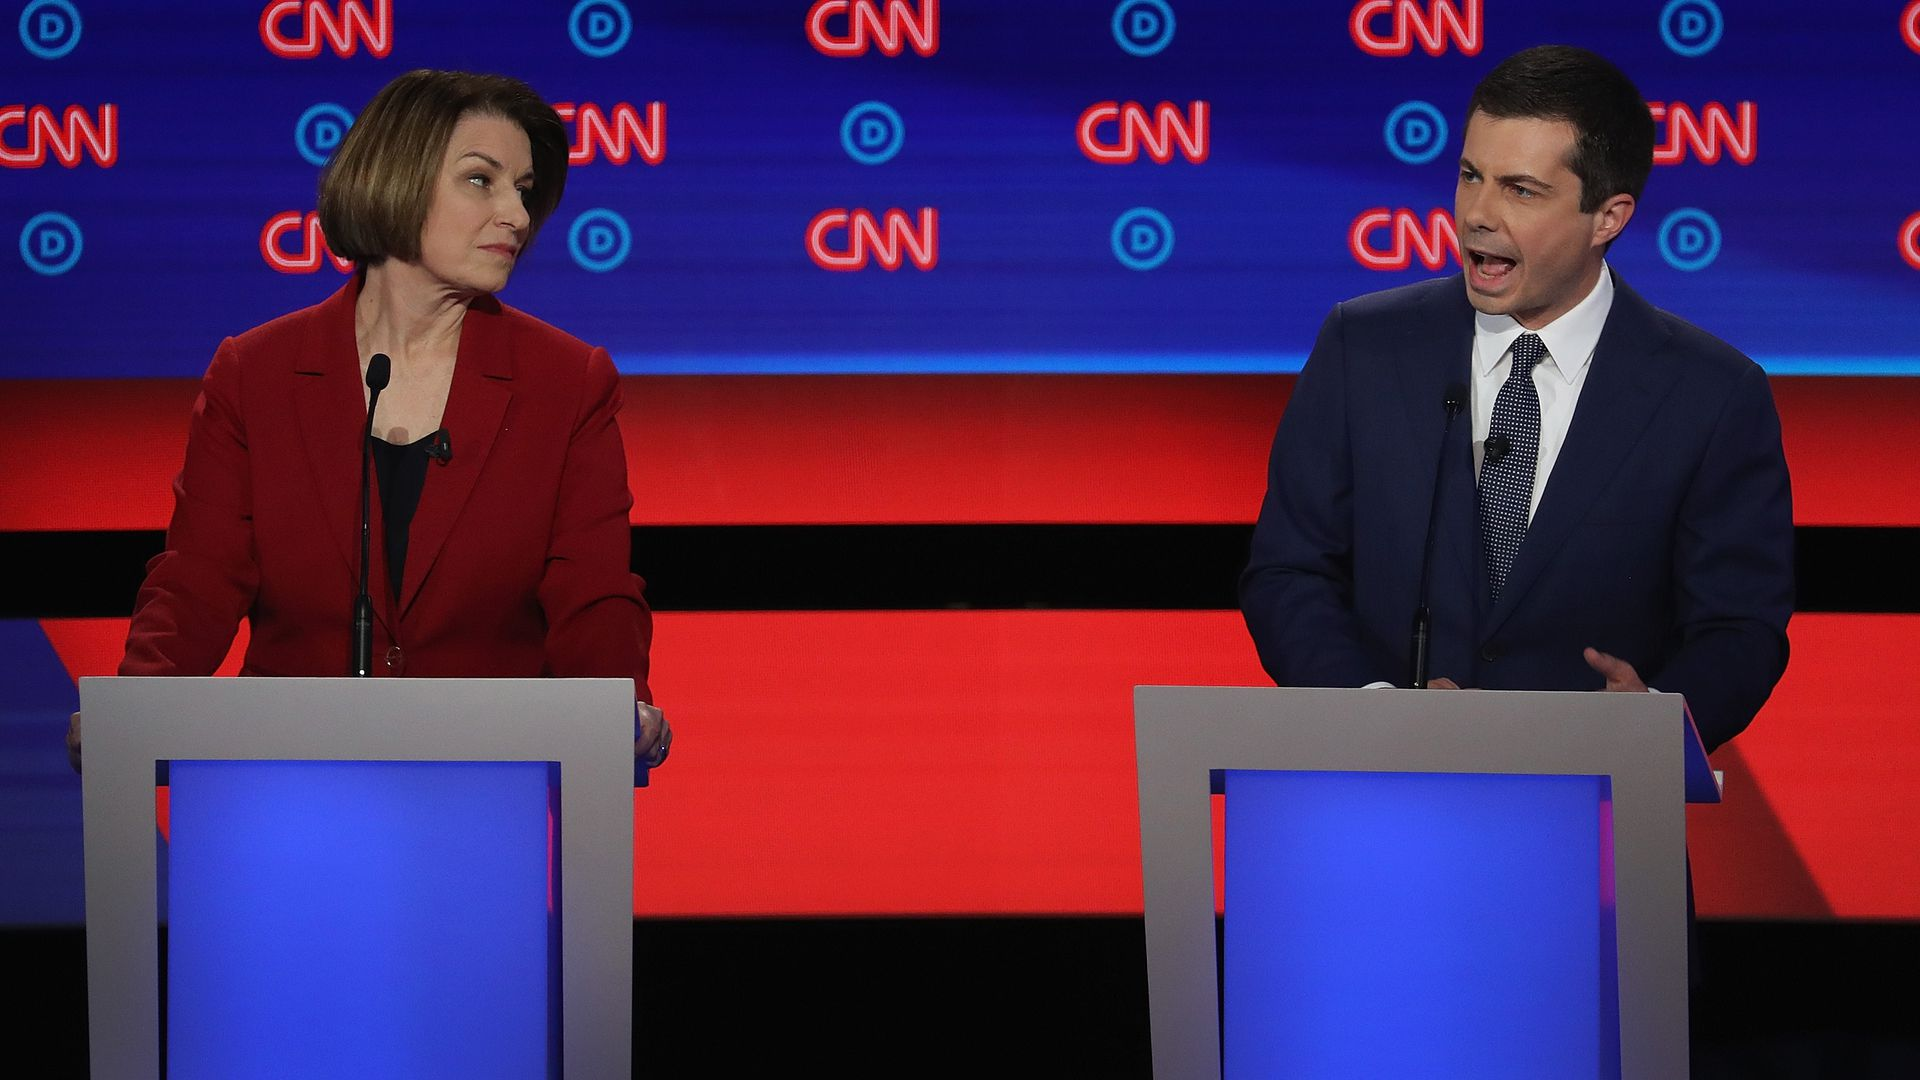 In this image, Klobuchar and Pete Buttigieg speak behind two different podiums on stage with the CNN logo behind them.